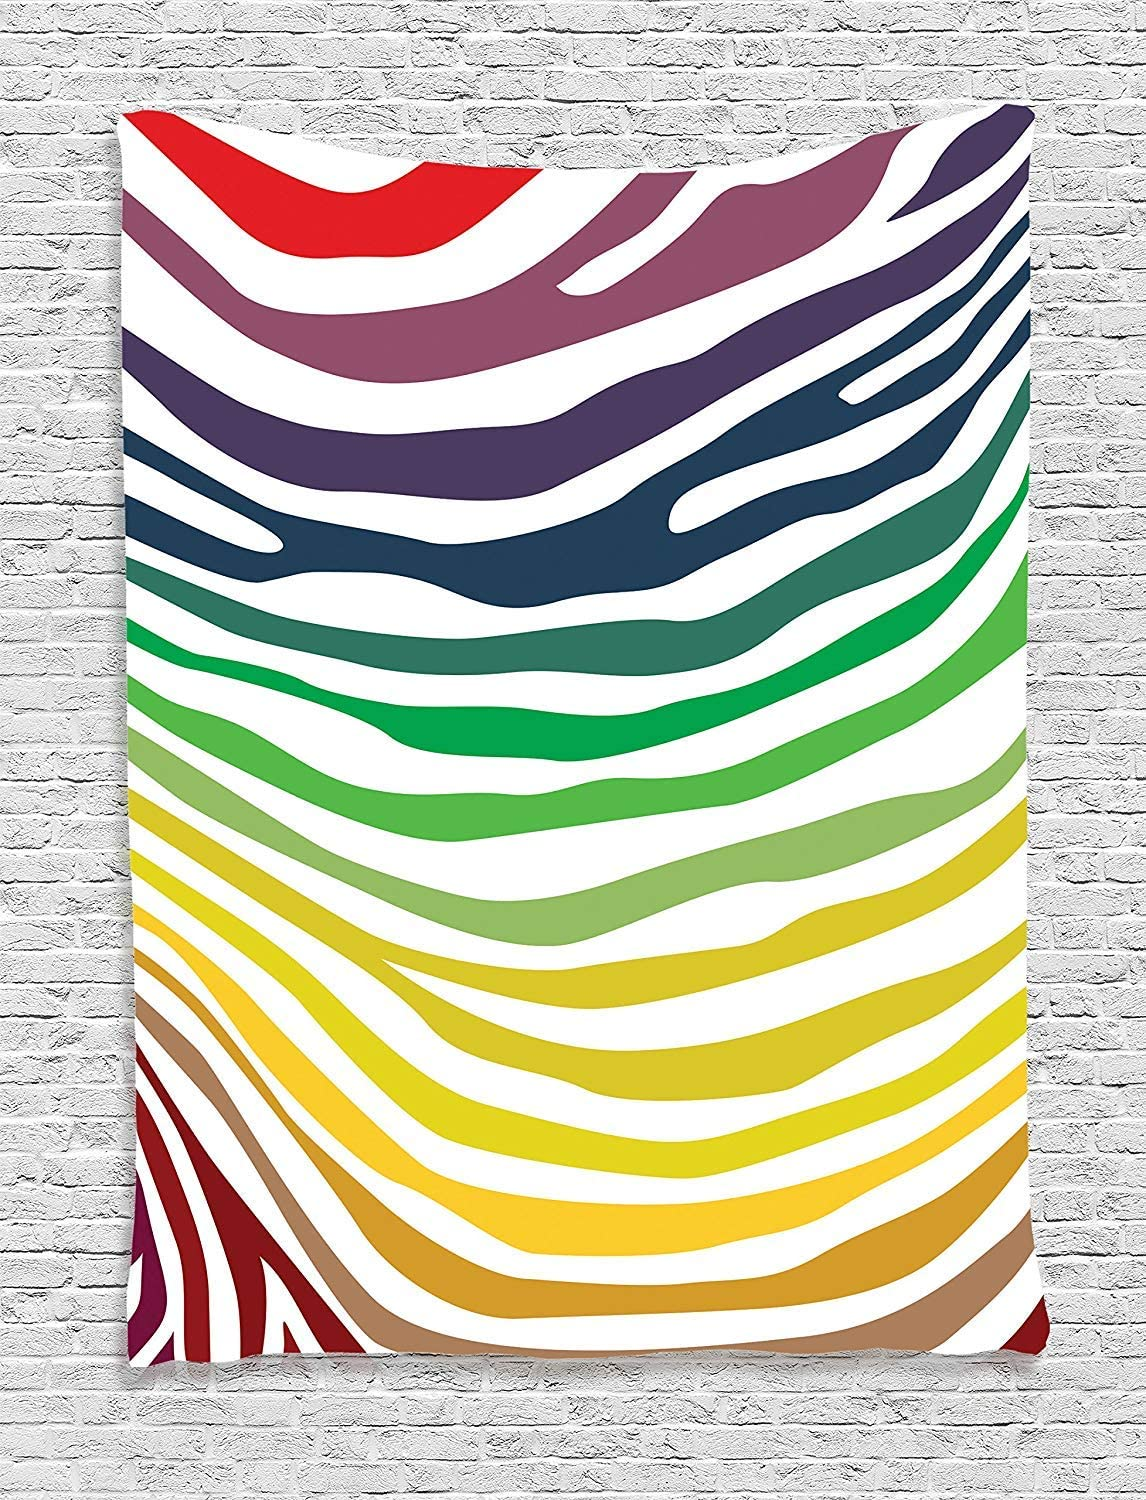 "Ambesonne Zebra Print Tapestry, Zebra Stripes Pattern in Cheering Rainbow Colors in Modern Style Art, Wall Hanging for Bedroom Living Room Dorm Decor, 60"" X 80"", Red Yellow Green"